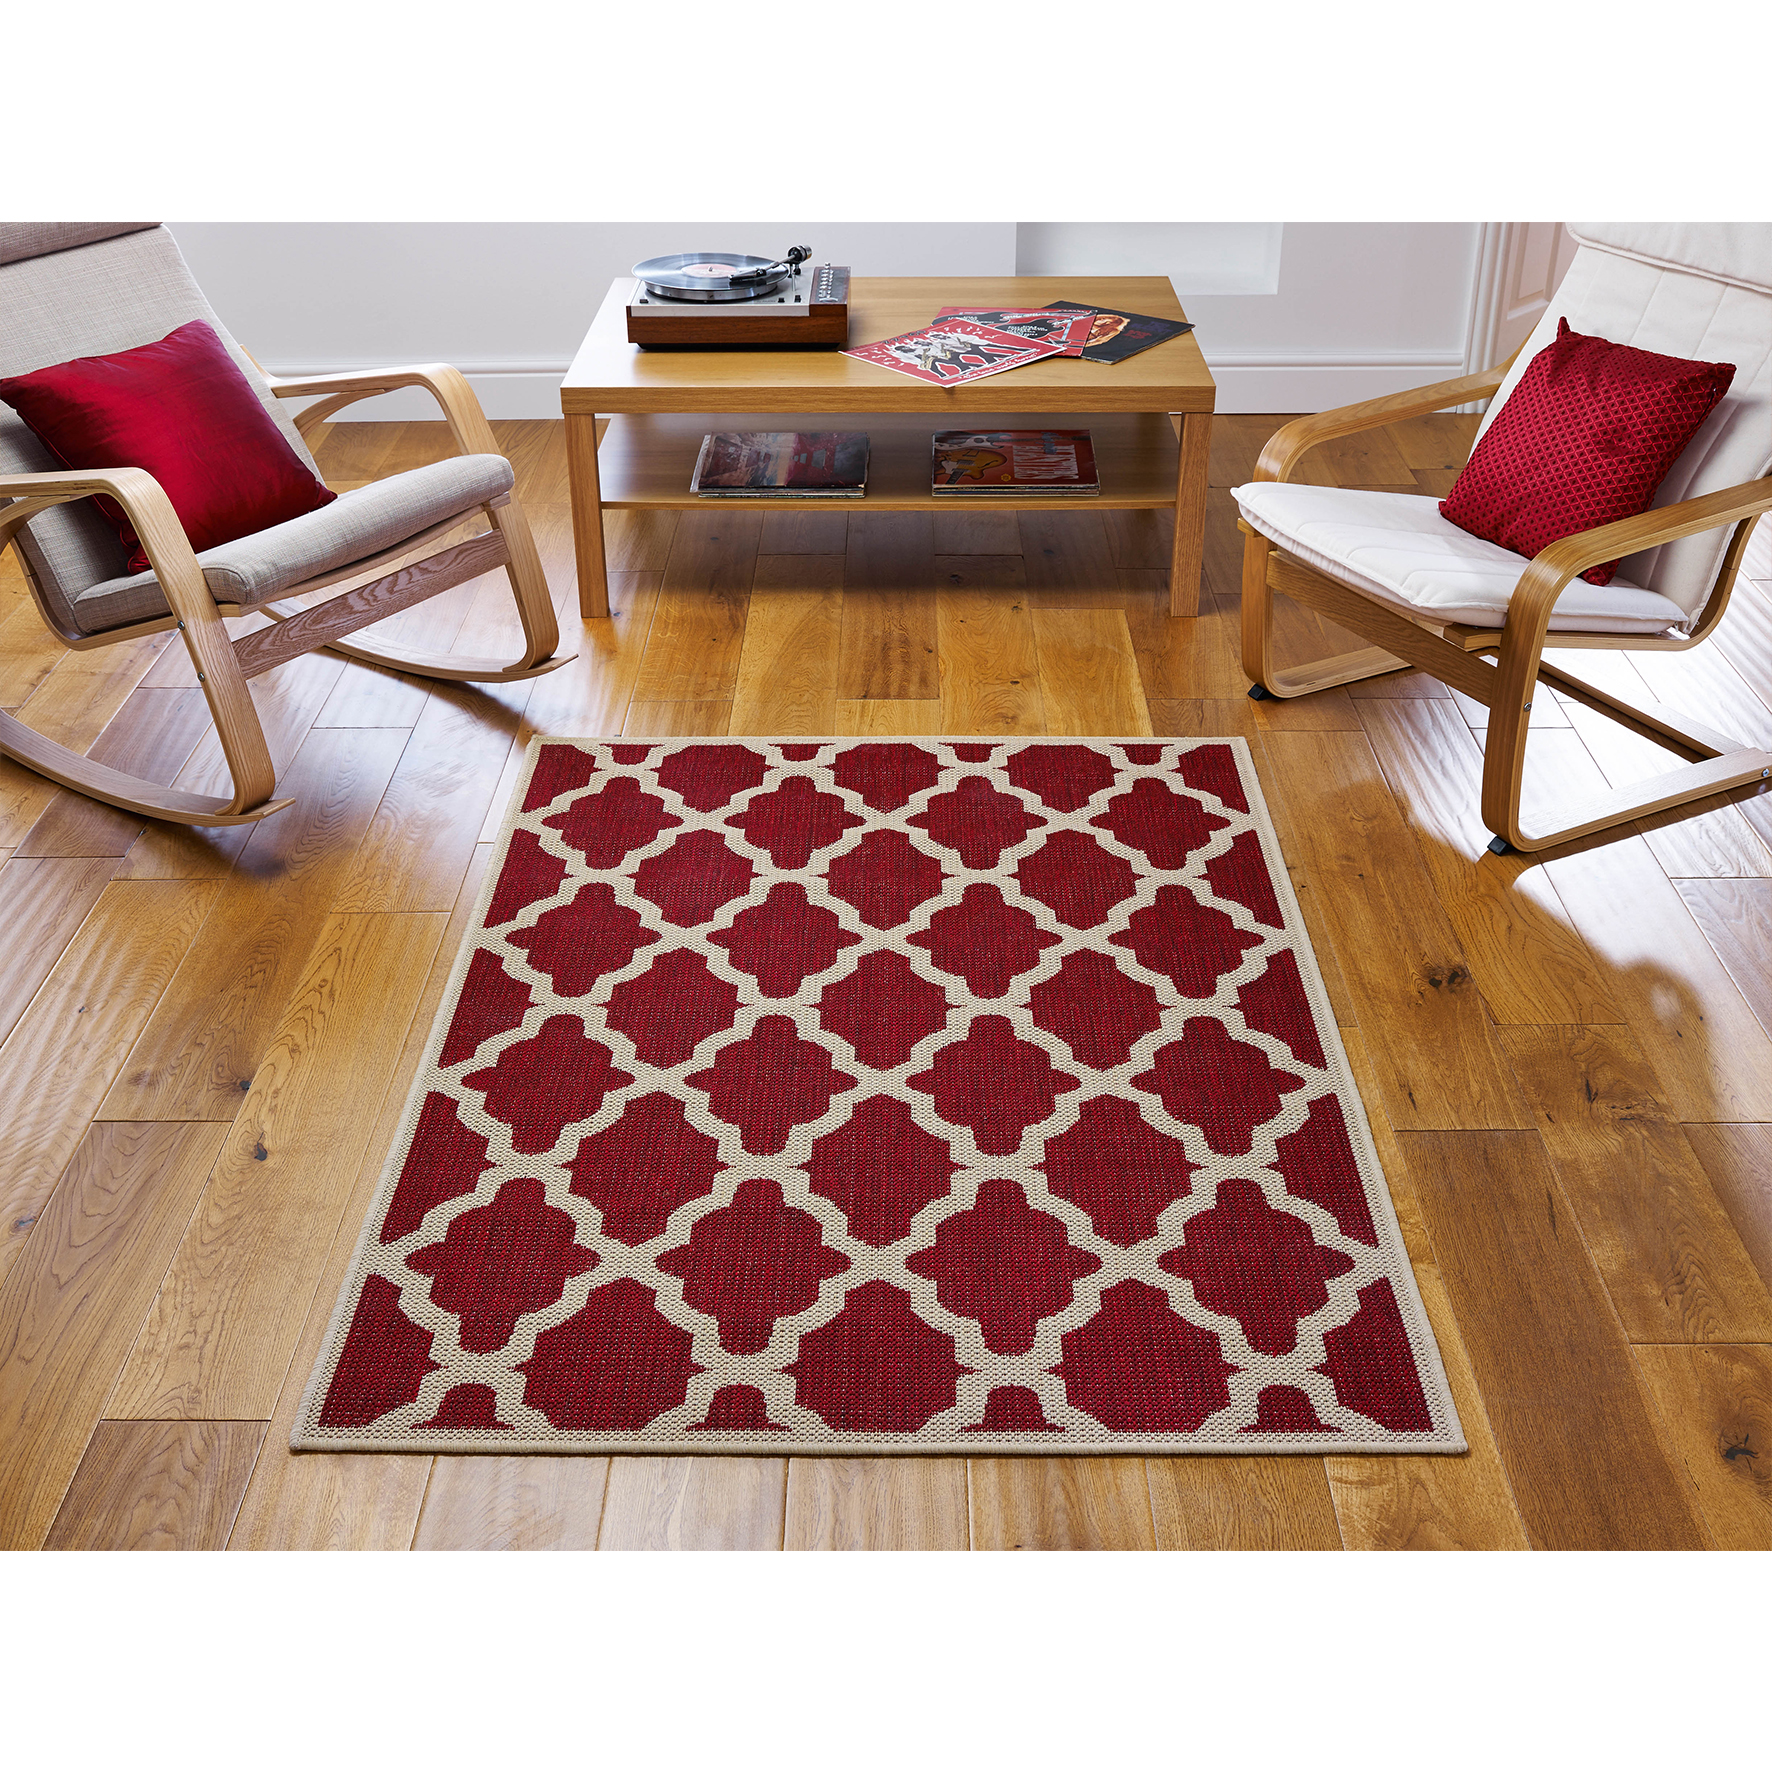 Kitchen Rugs & Kitchen Runners - Free UK Delivery